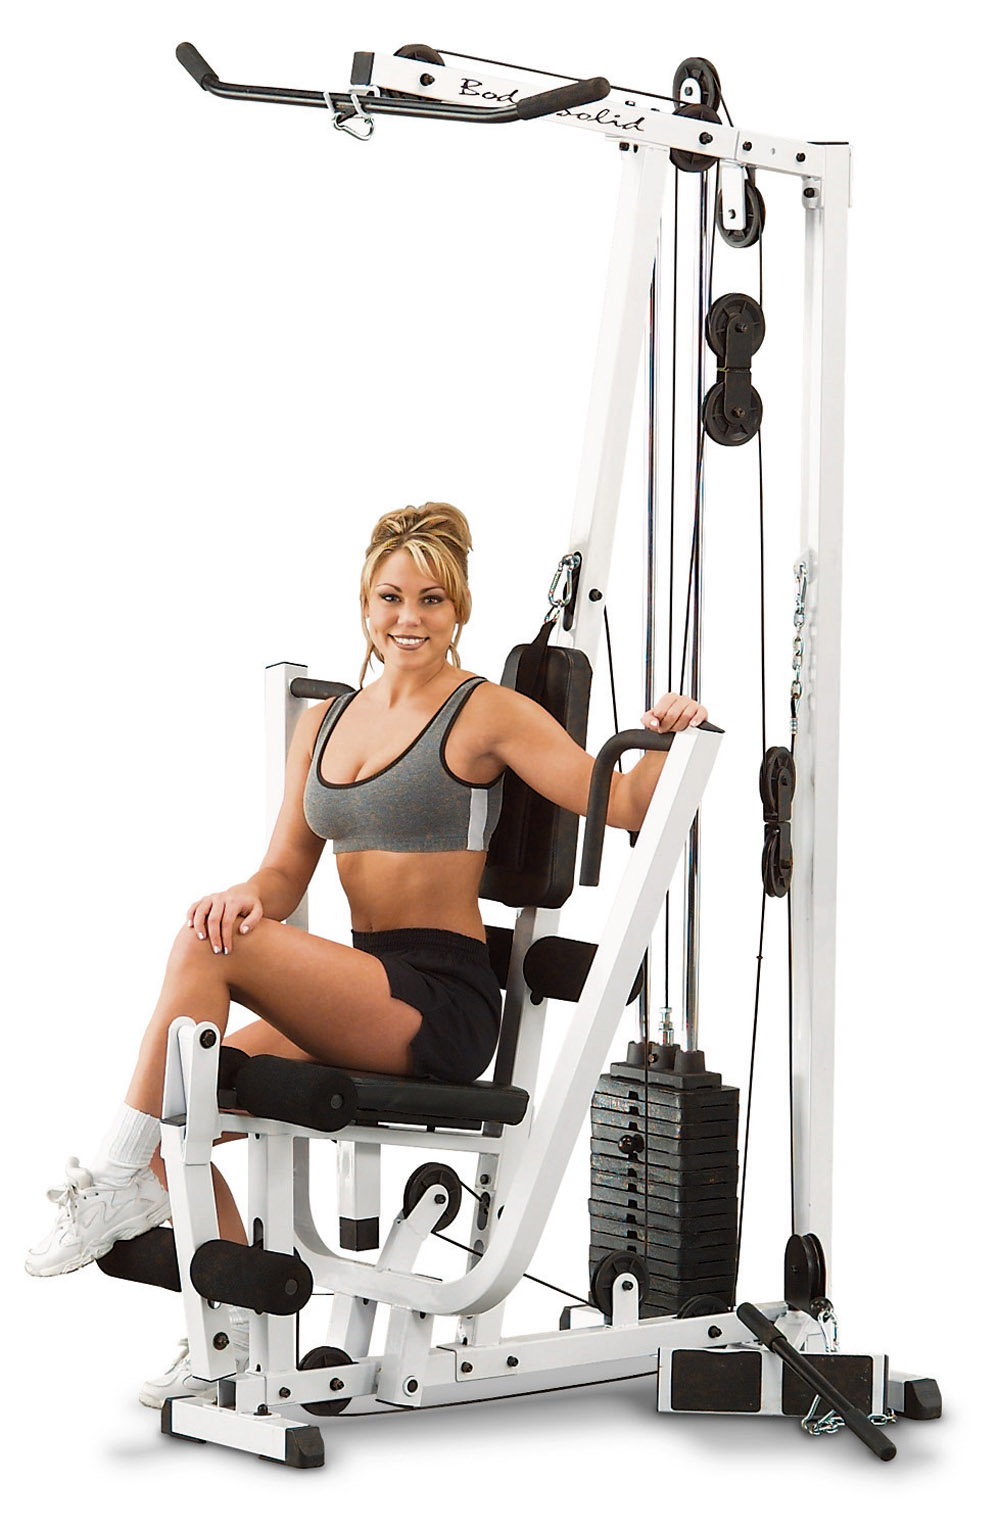 Powerline EXM1500S Home Gym Home Gym 0 0 Proper Nutrition Is Important For Any Diet